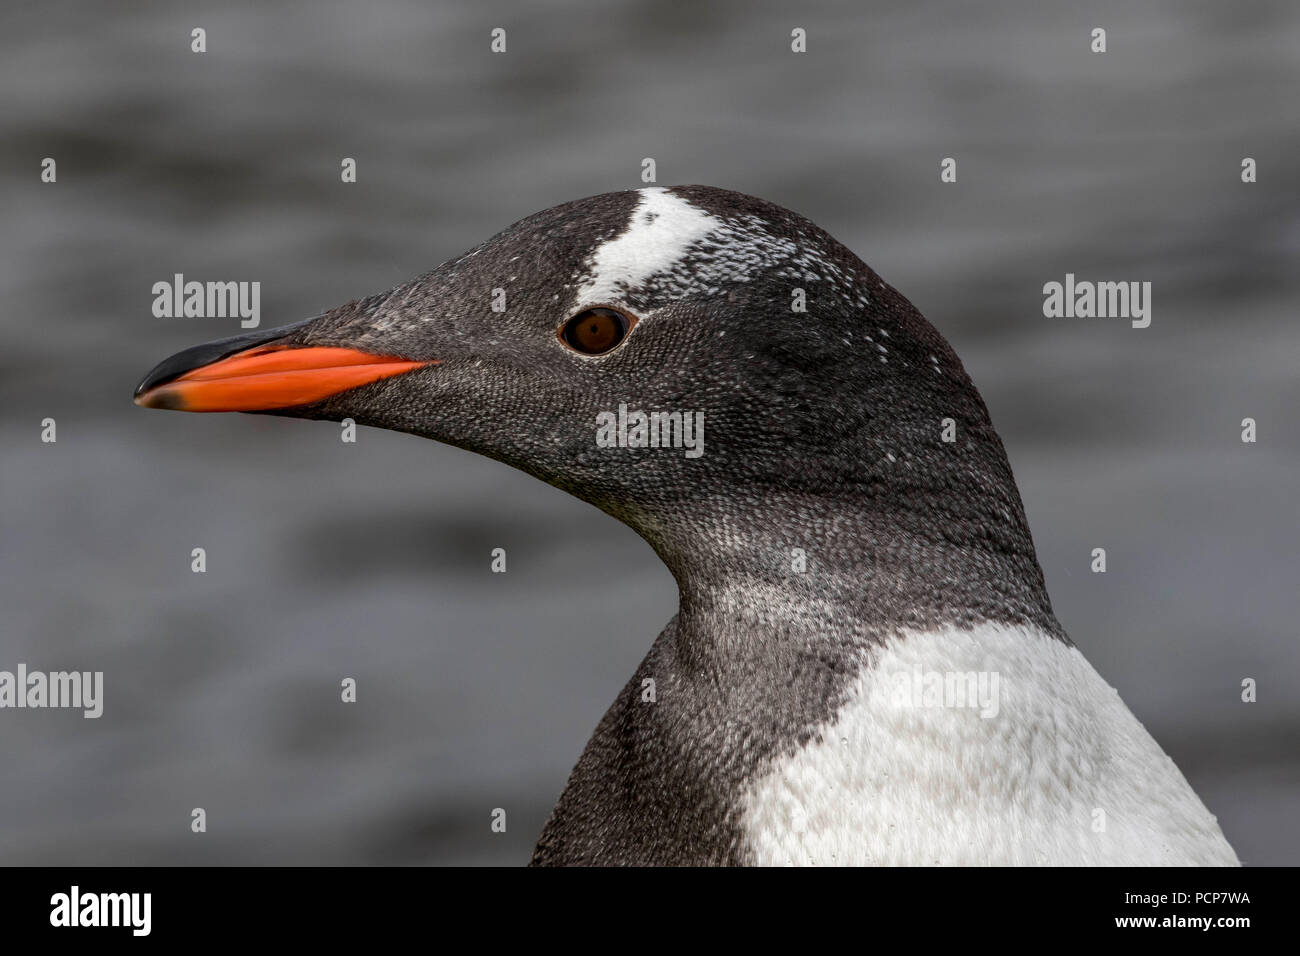 Gentoo penguin in South Georgia in the Amtarctic. - Stock Image